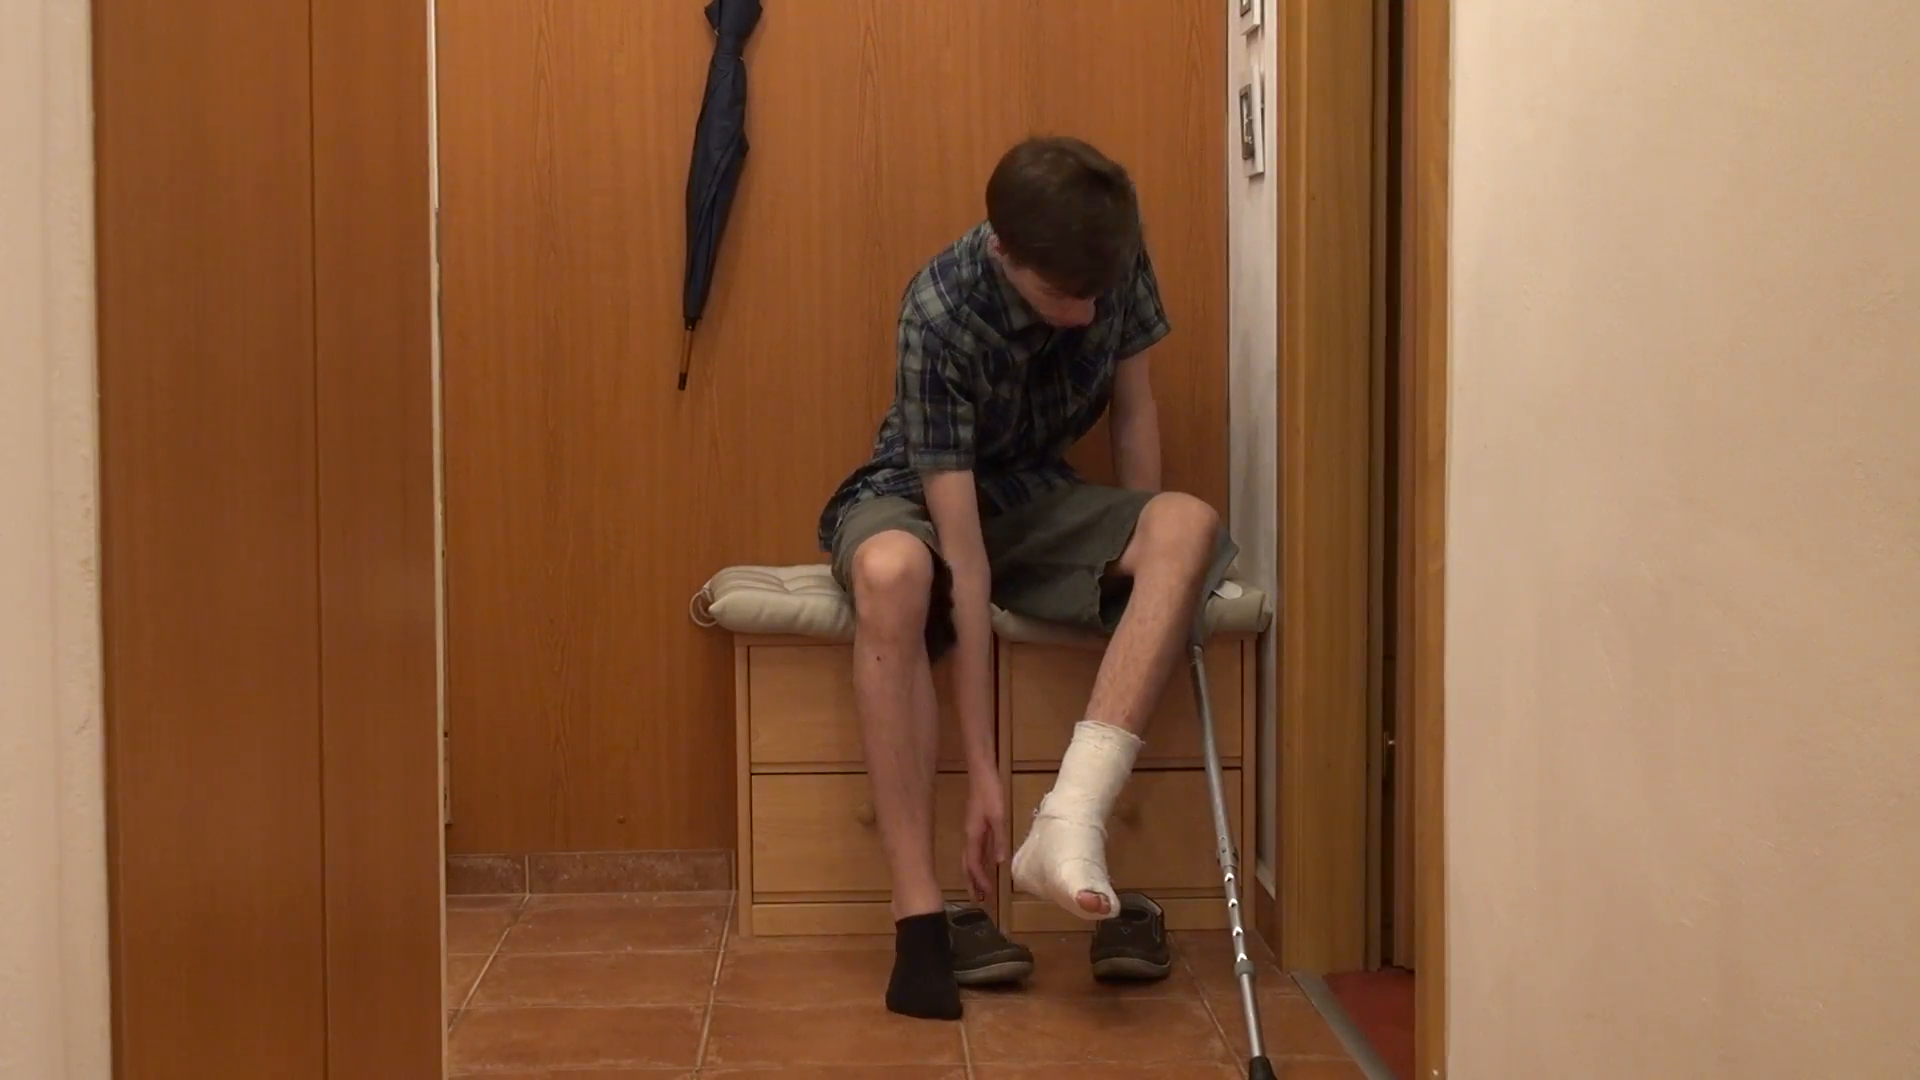 Teenager, trauma, broken leg, walking cane, accident, home Stock Video  Footage - VideoBlocks - Broken Leg PNG HD